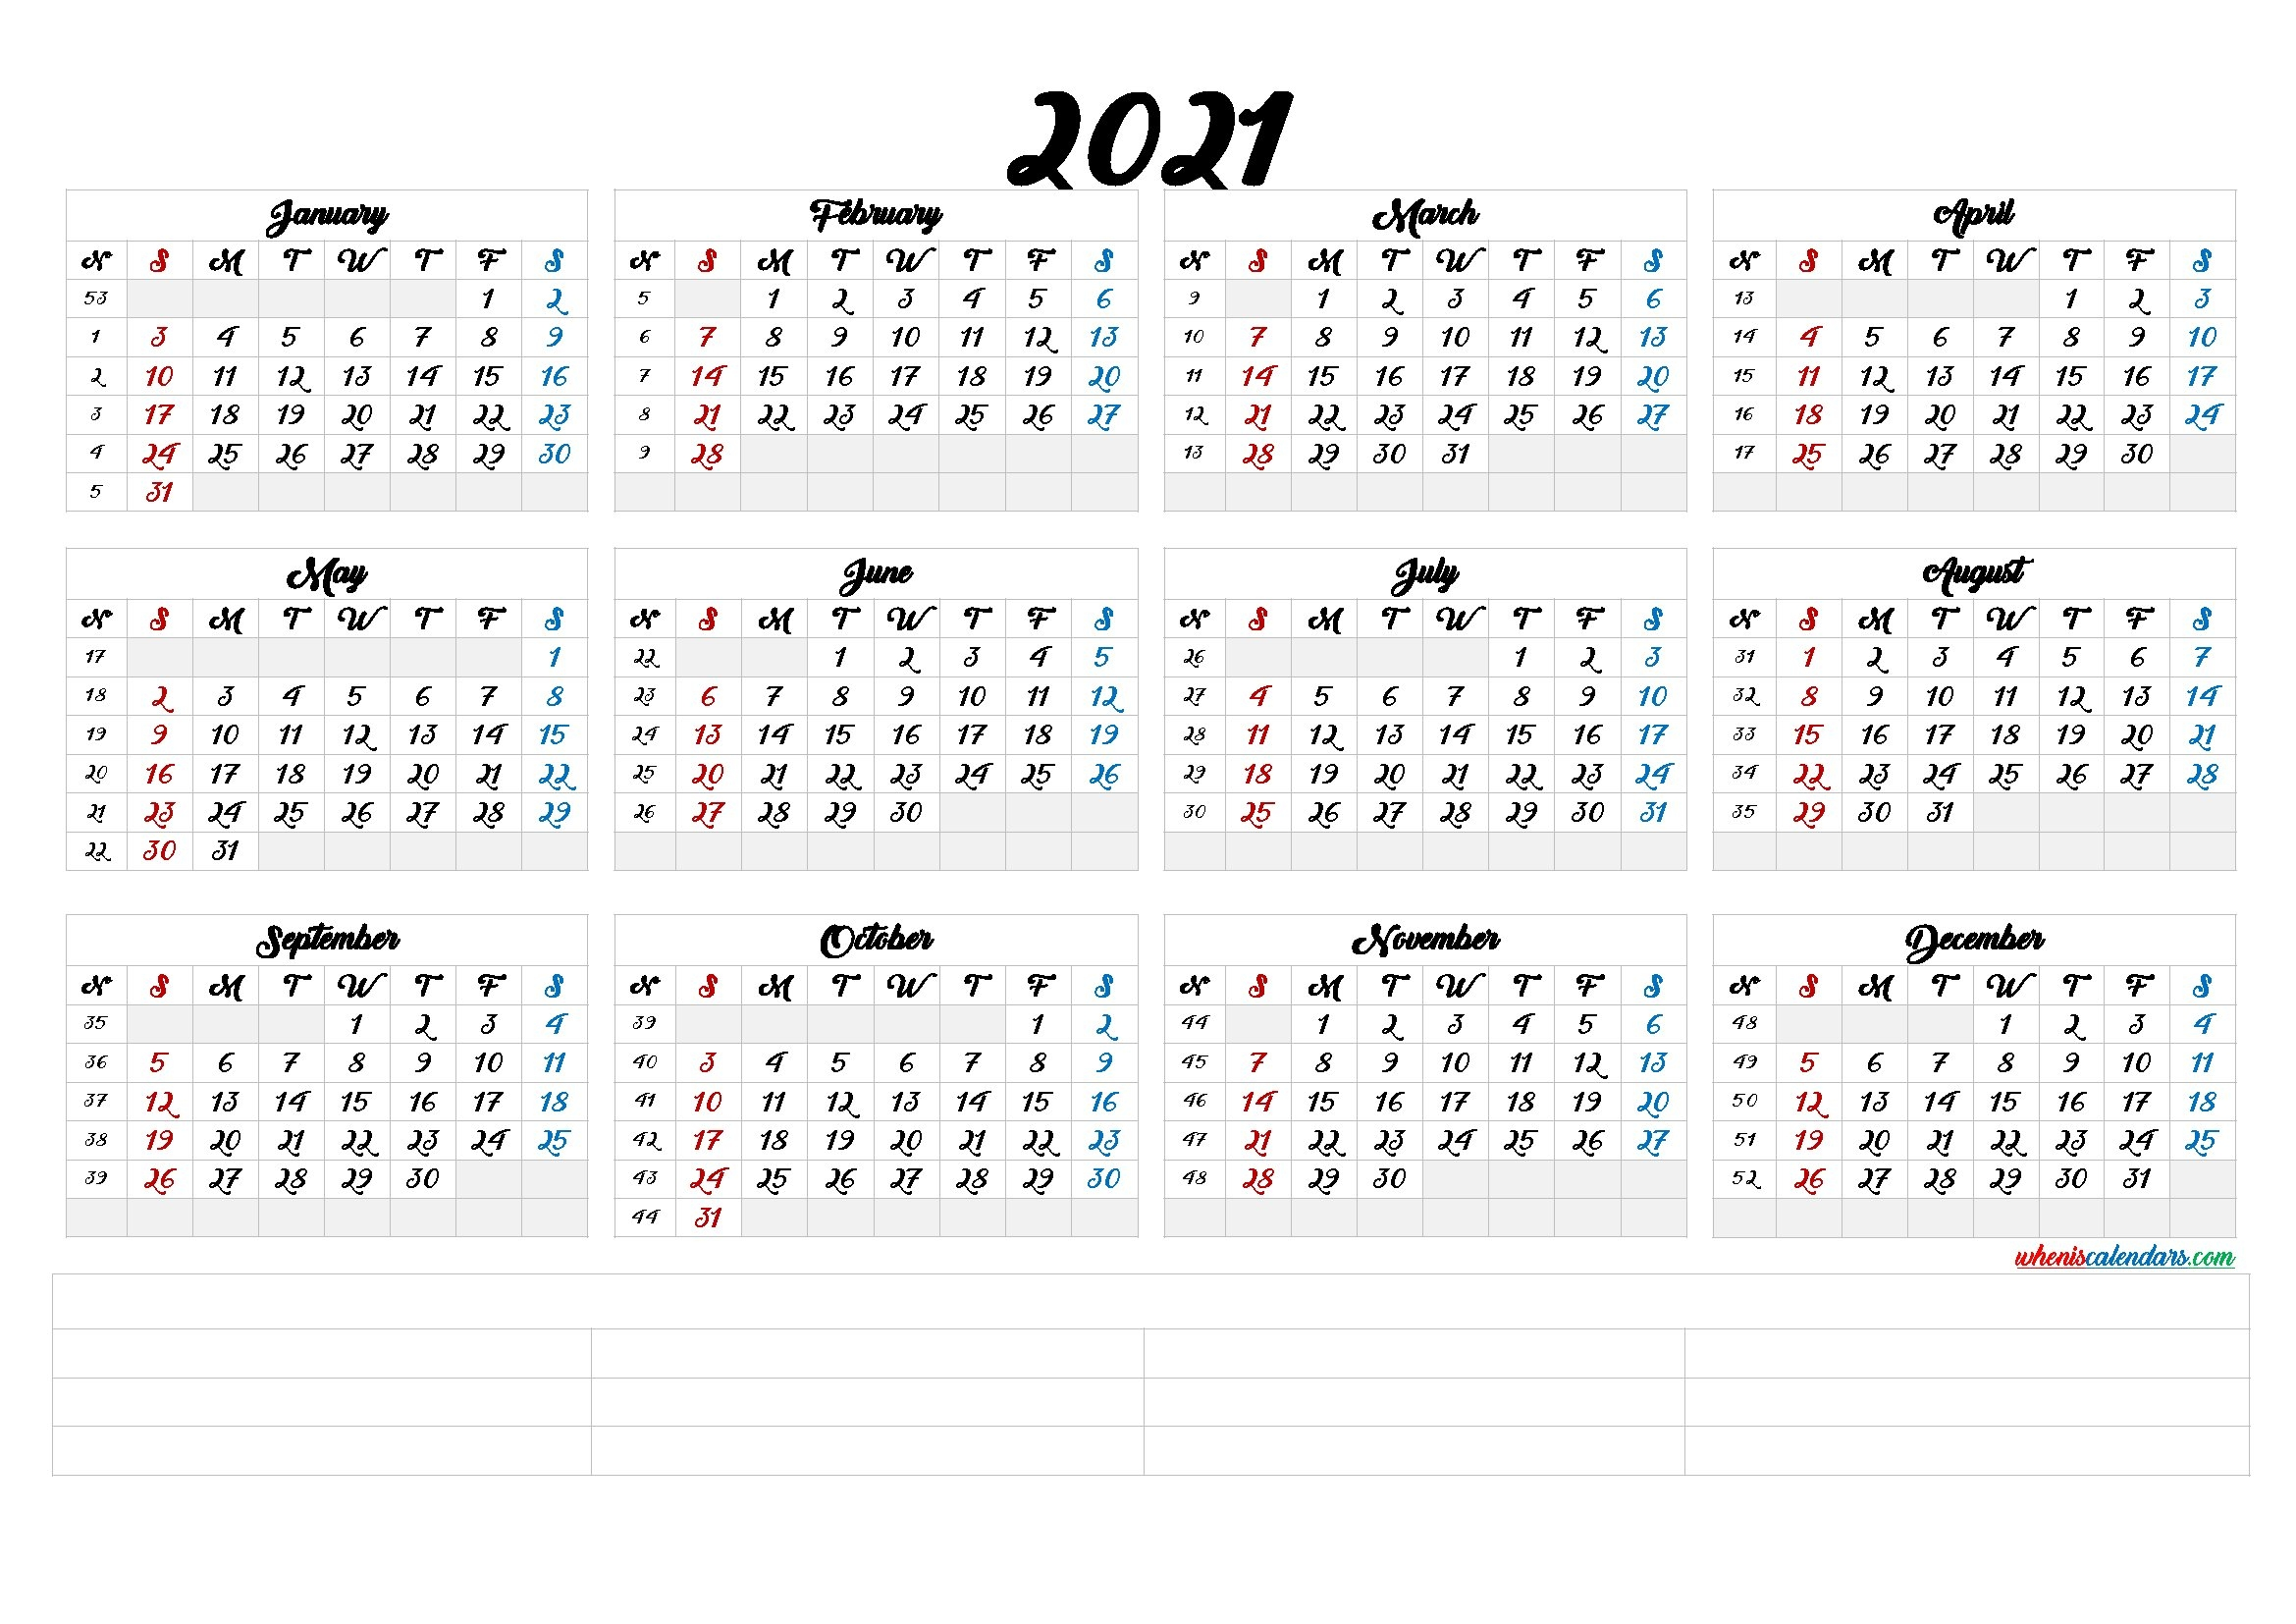 2021 Calendar With Week Number Printable Free : 2021 Yearly Business Calendar With Week Number with Free Photo 2021 Calendar To Download Graphics